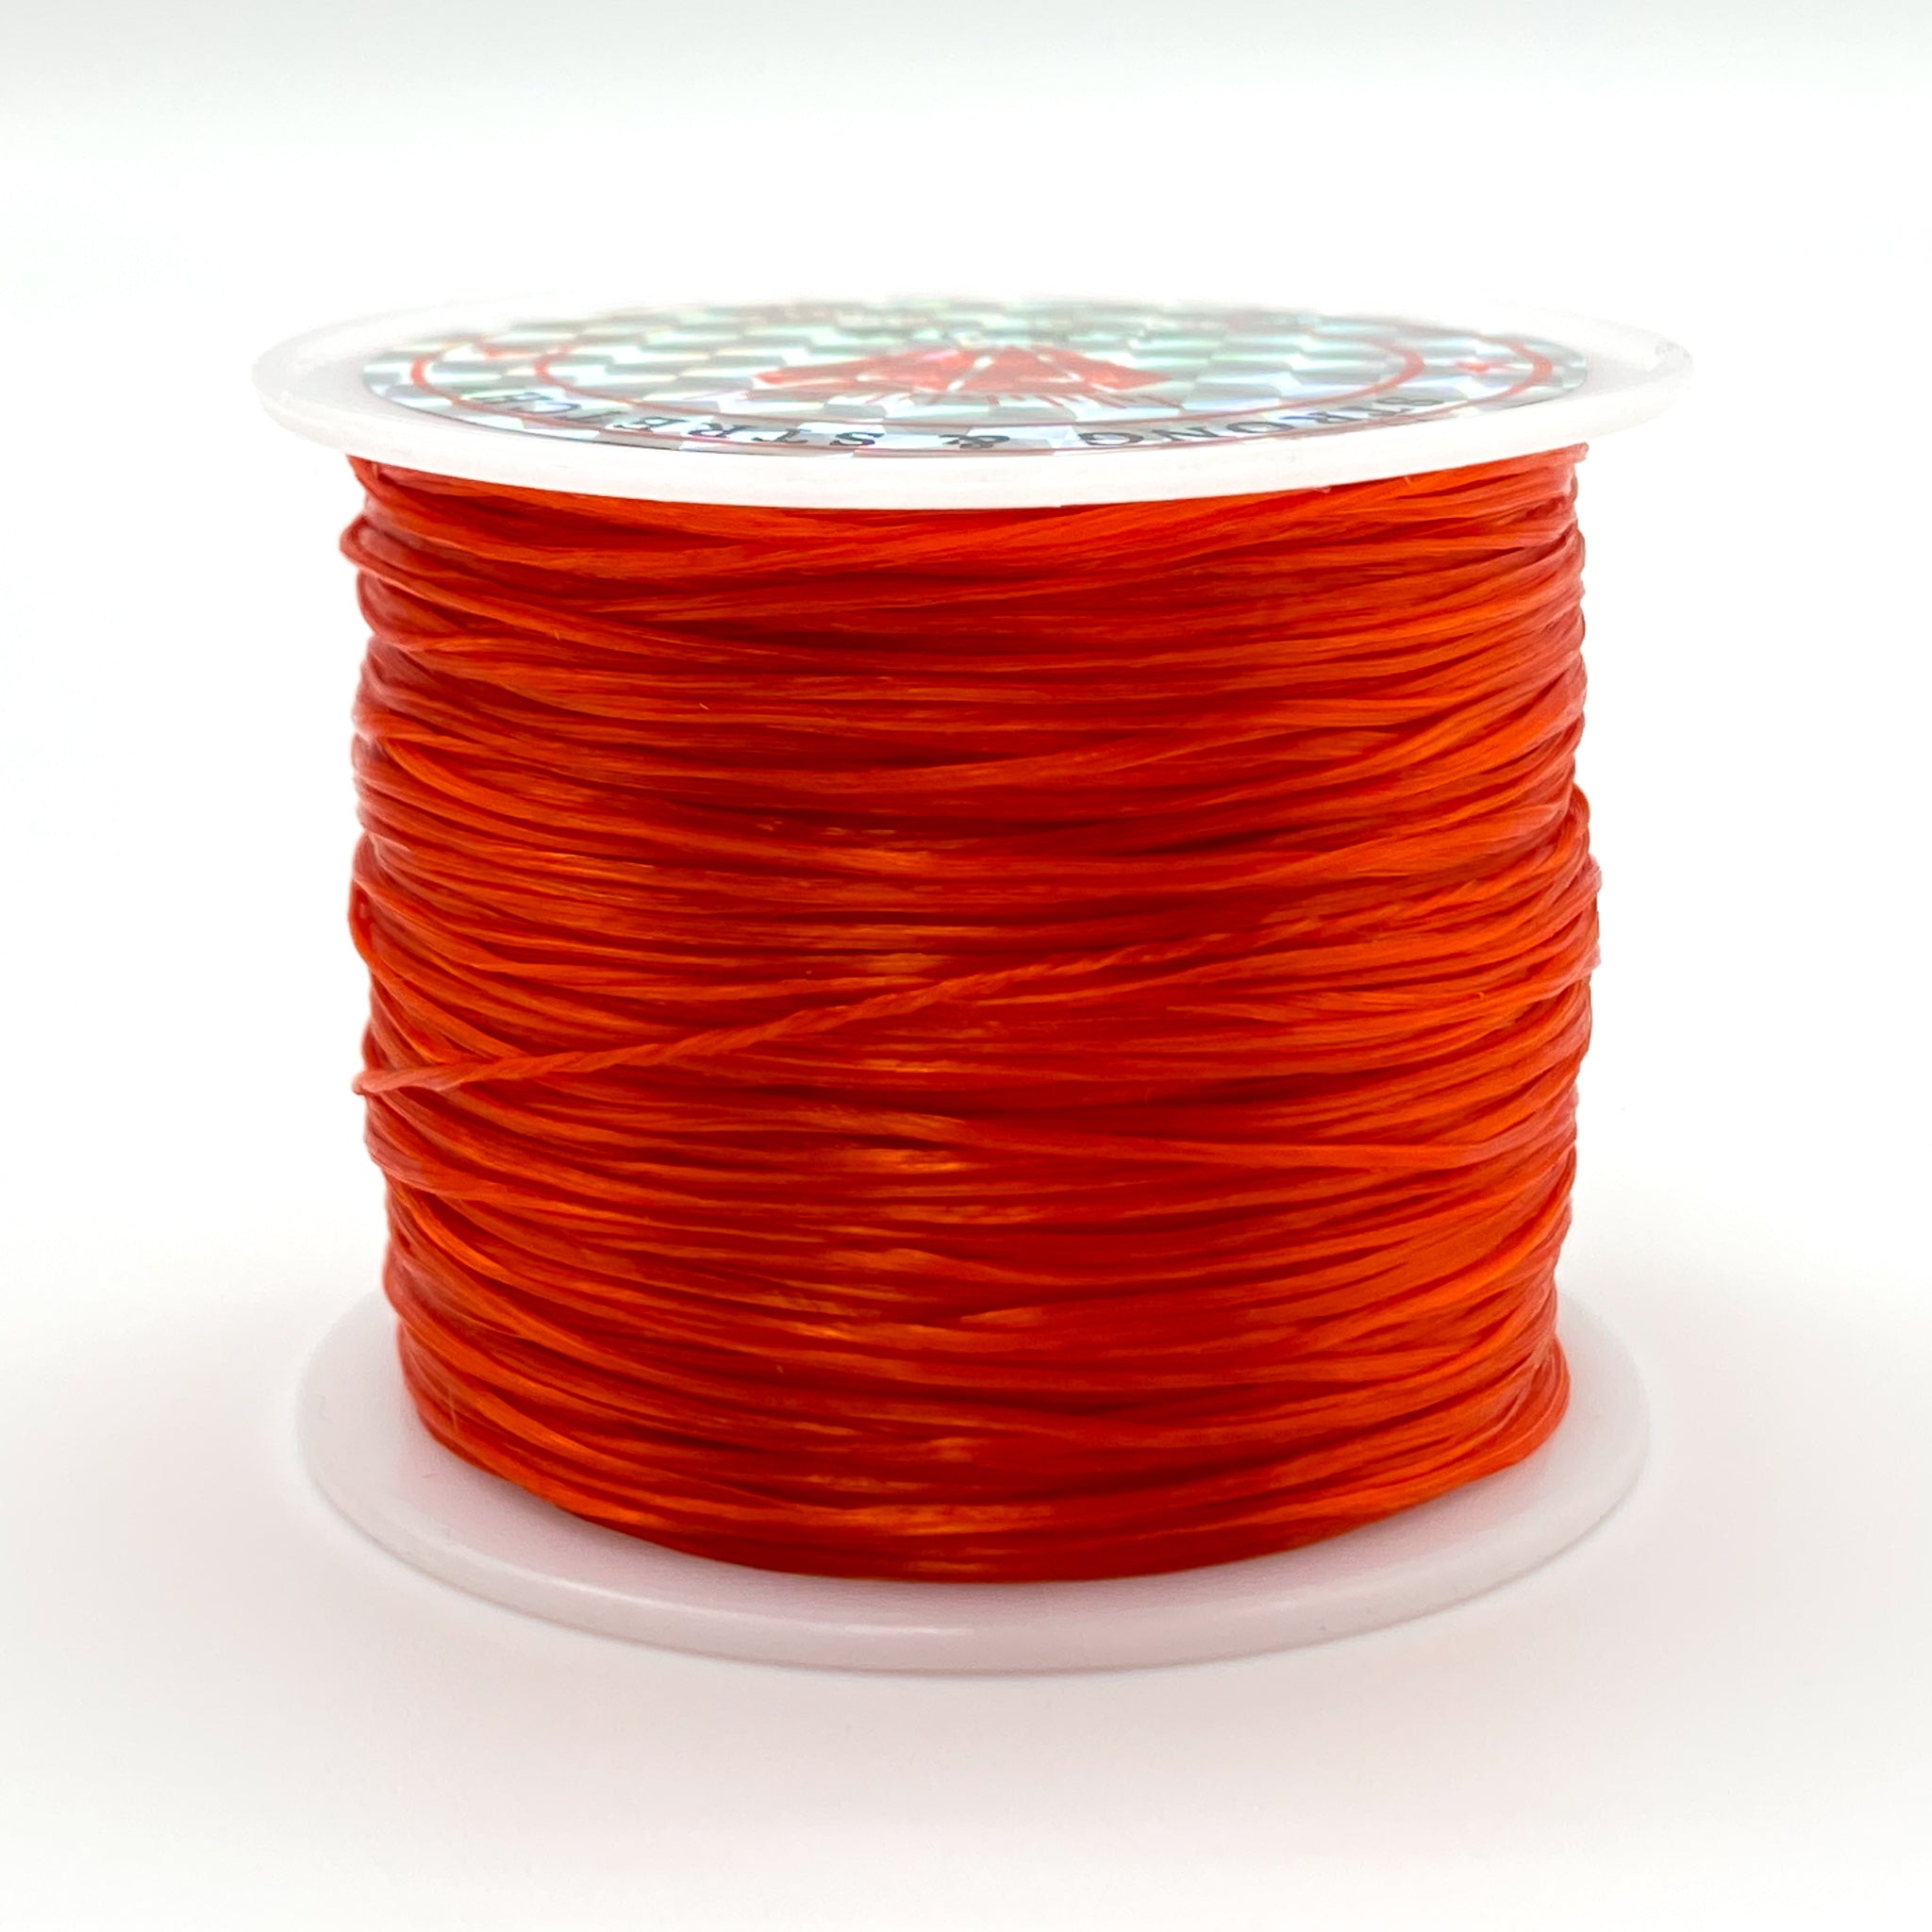 Stretchy Cord Spool - A BESTSELLER